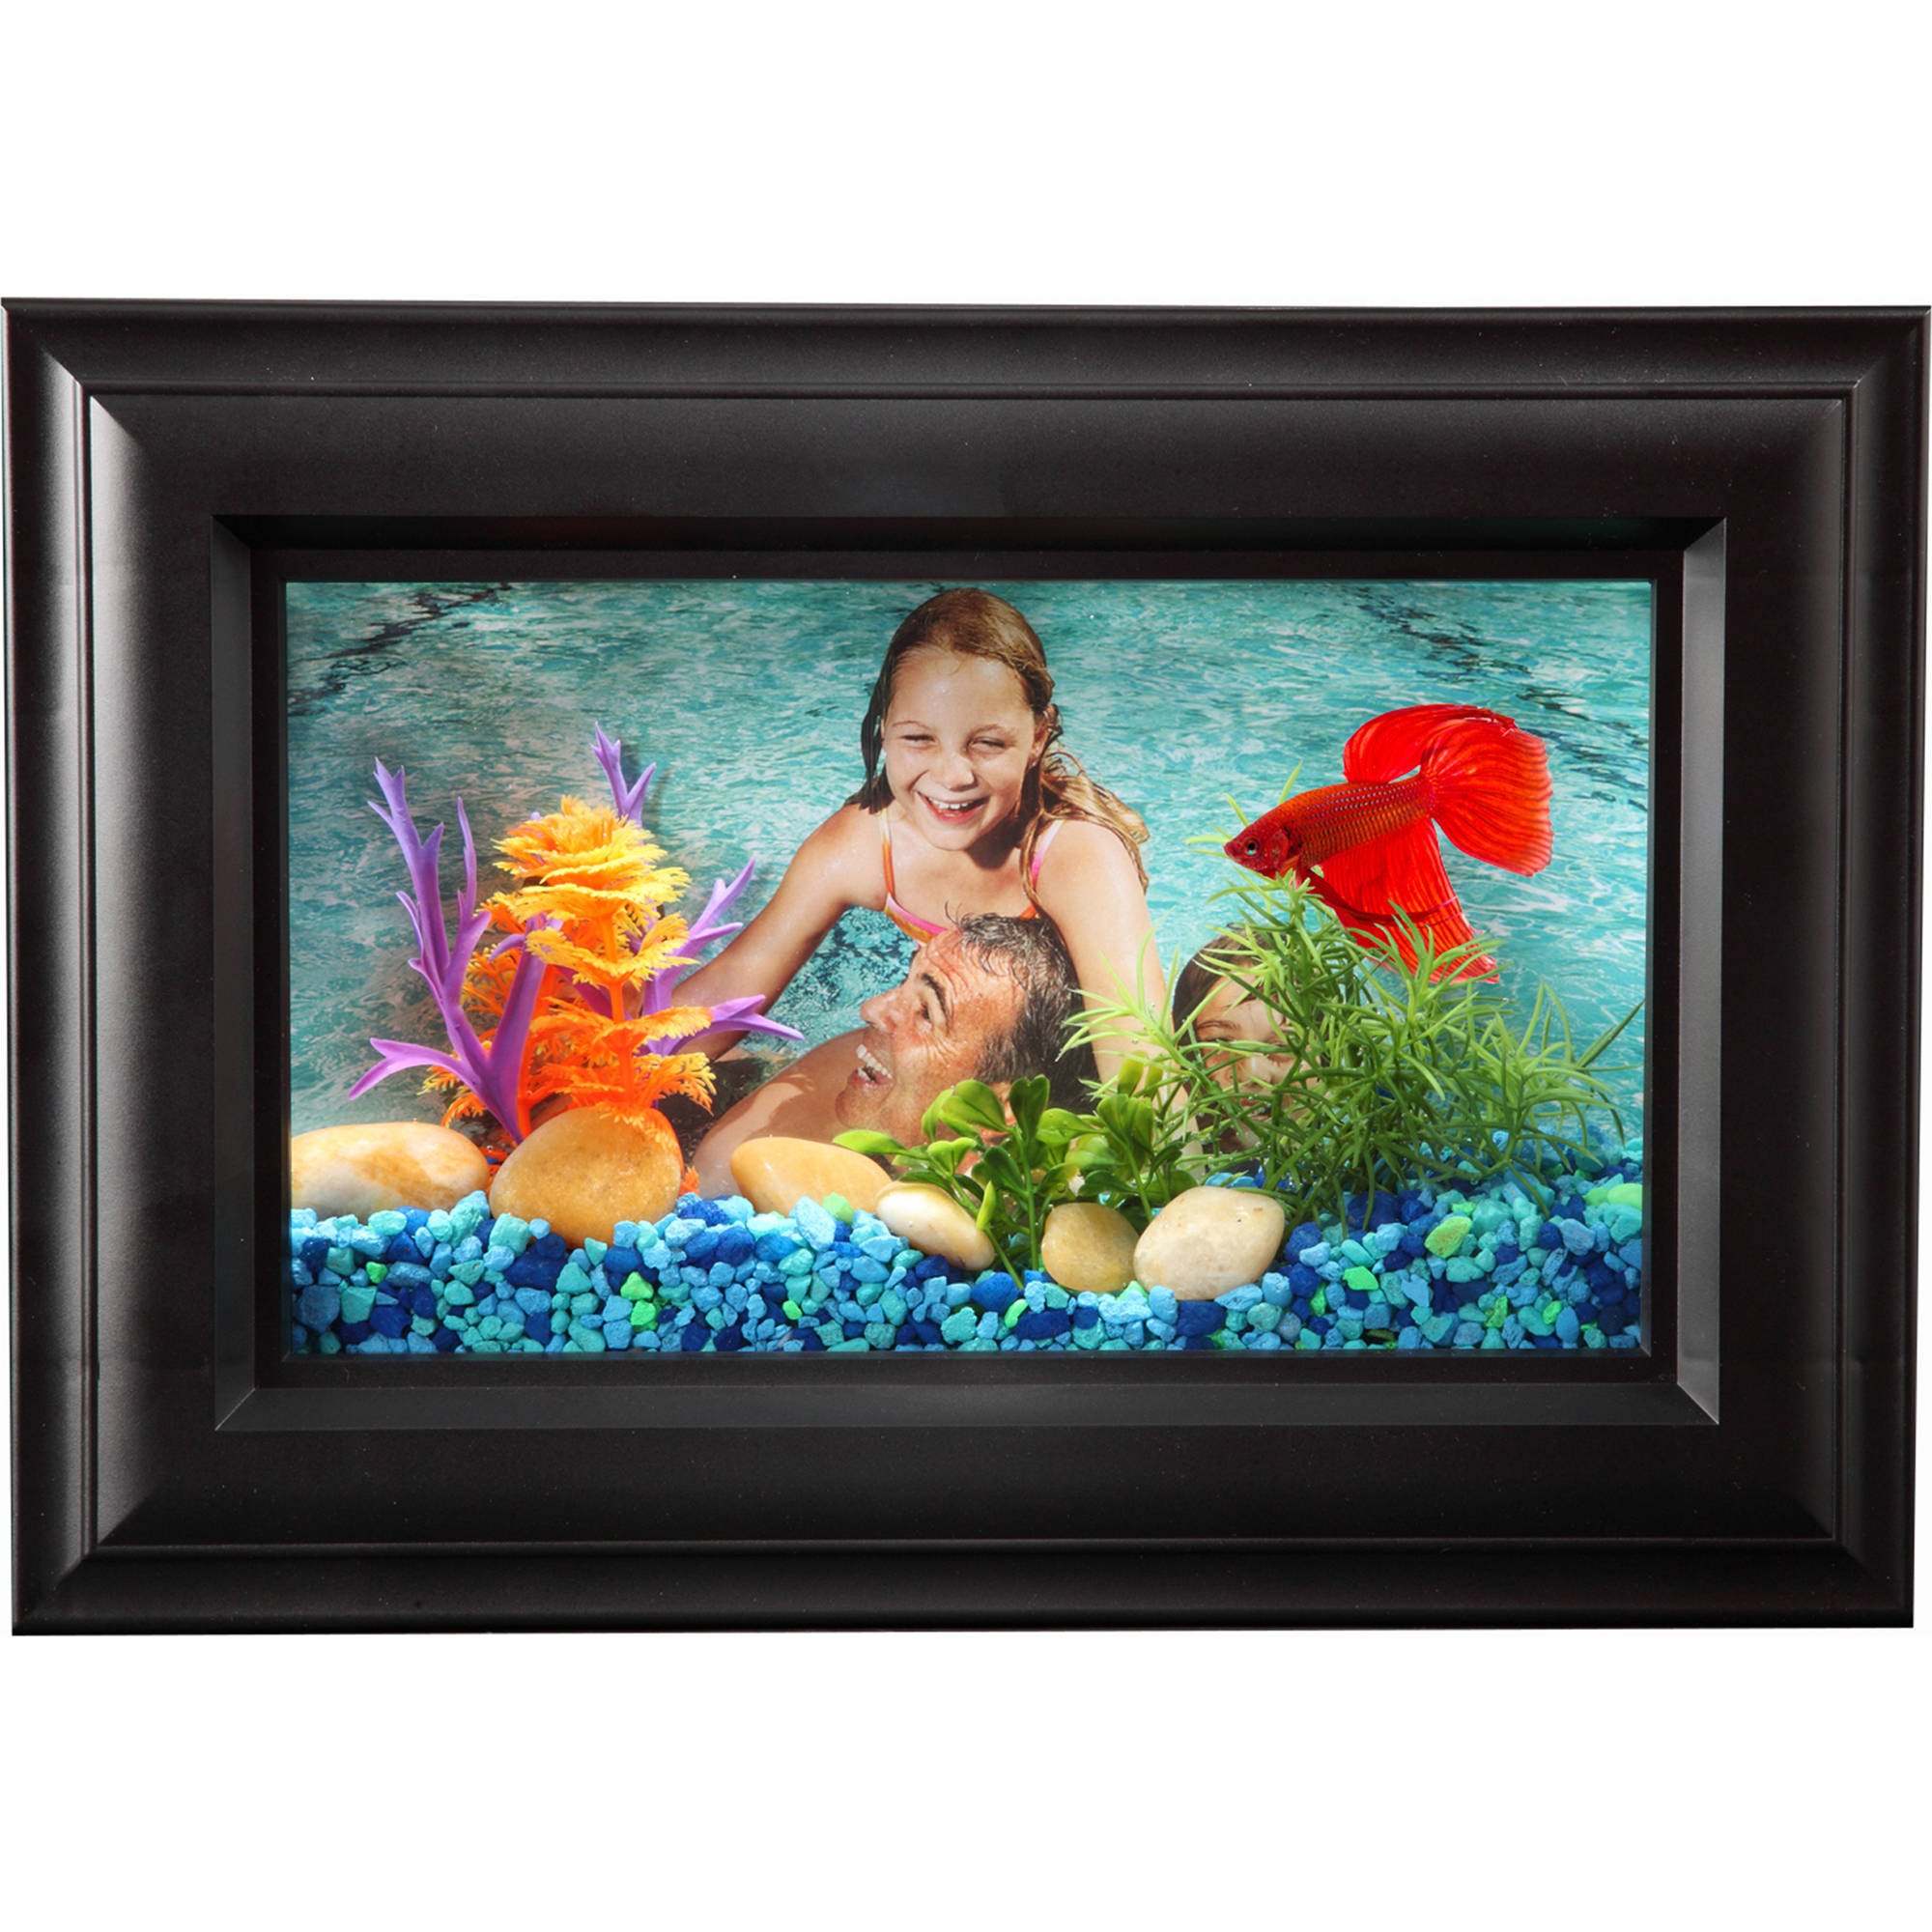 Hawkeye .75 Gallon Picture Frame Aquarium with LED Lighting